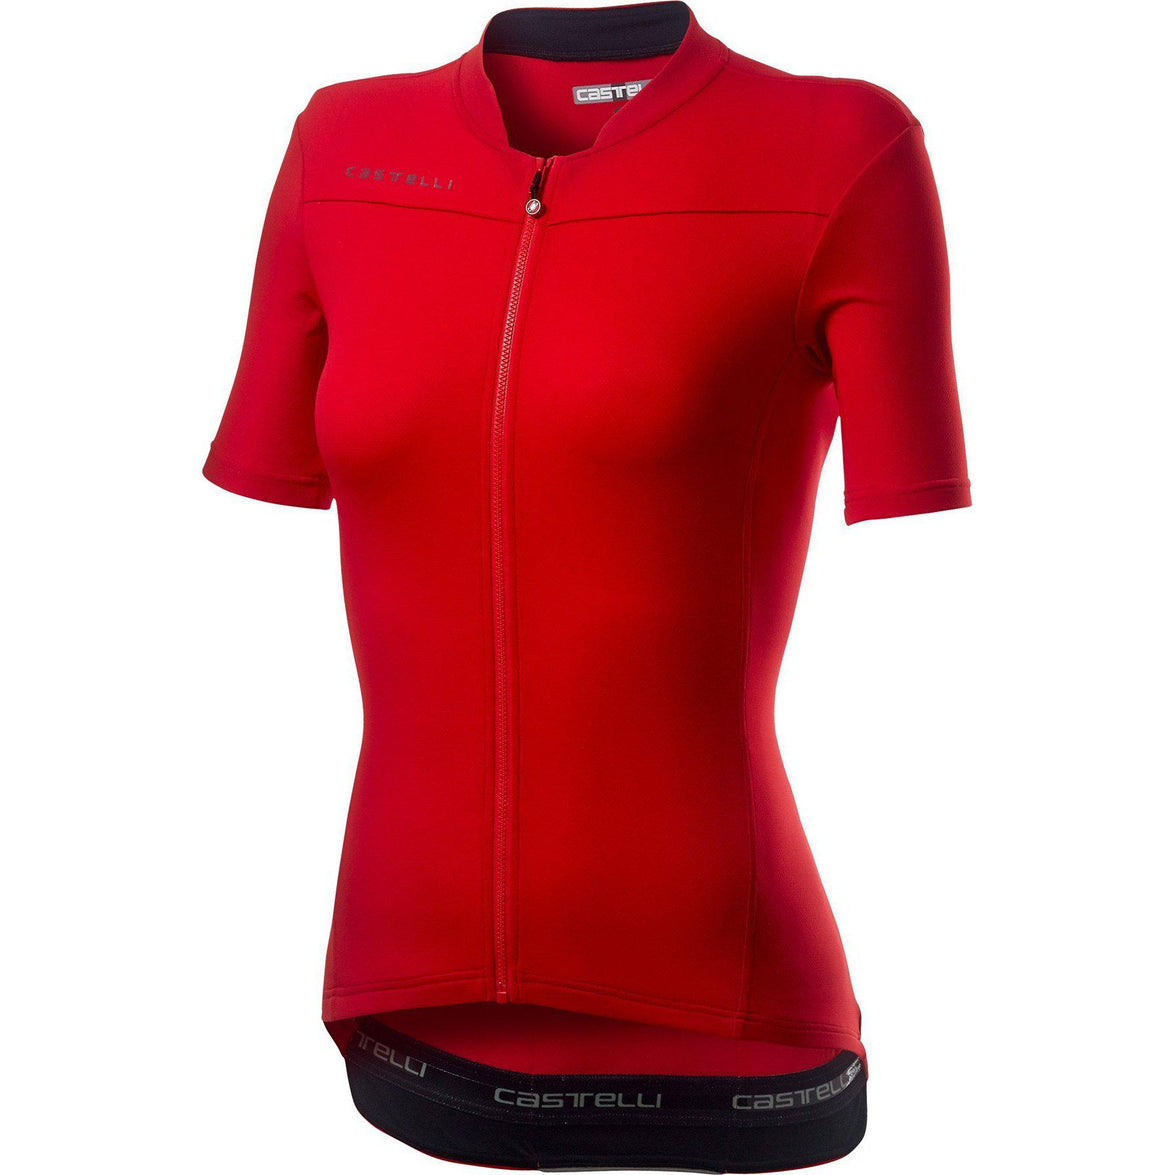 Castelli-Castelli Anima 3 Jersey-Red/Black-XS-CS200680231-saddleback-elite-performance-cycling